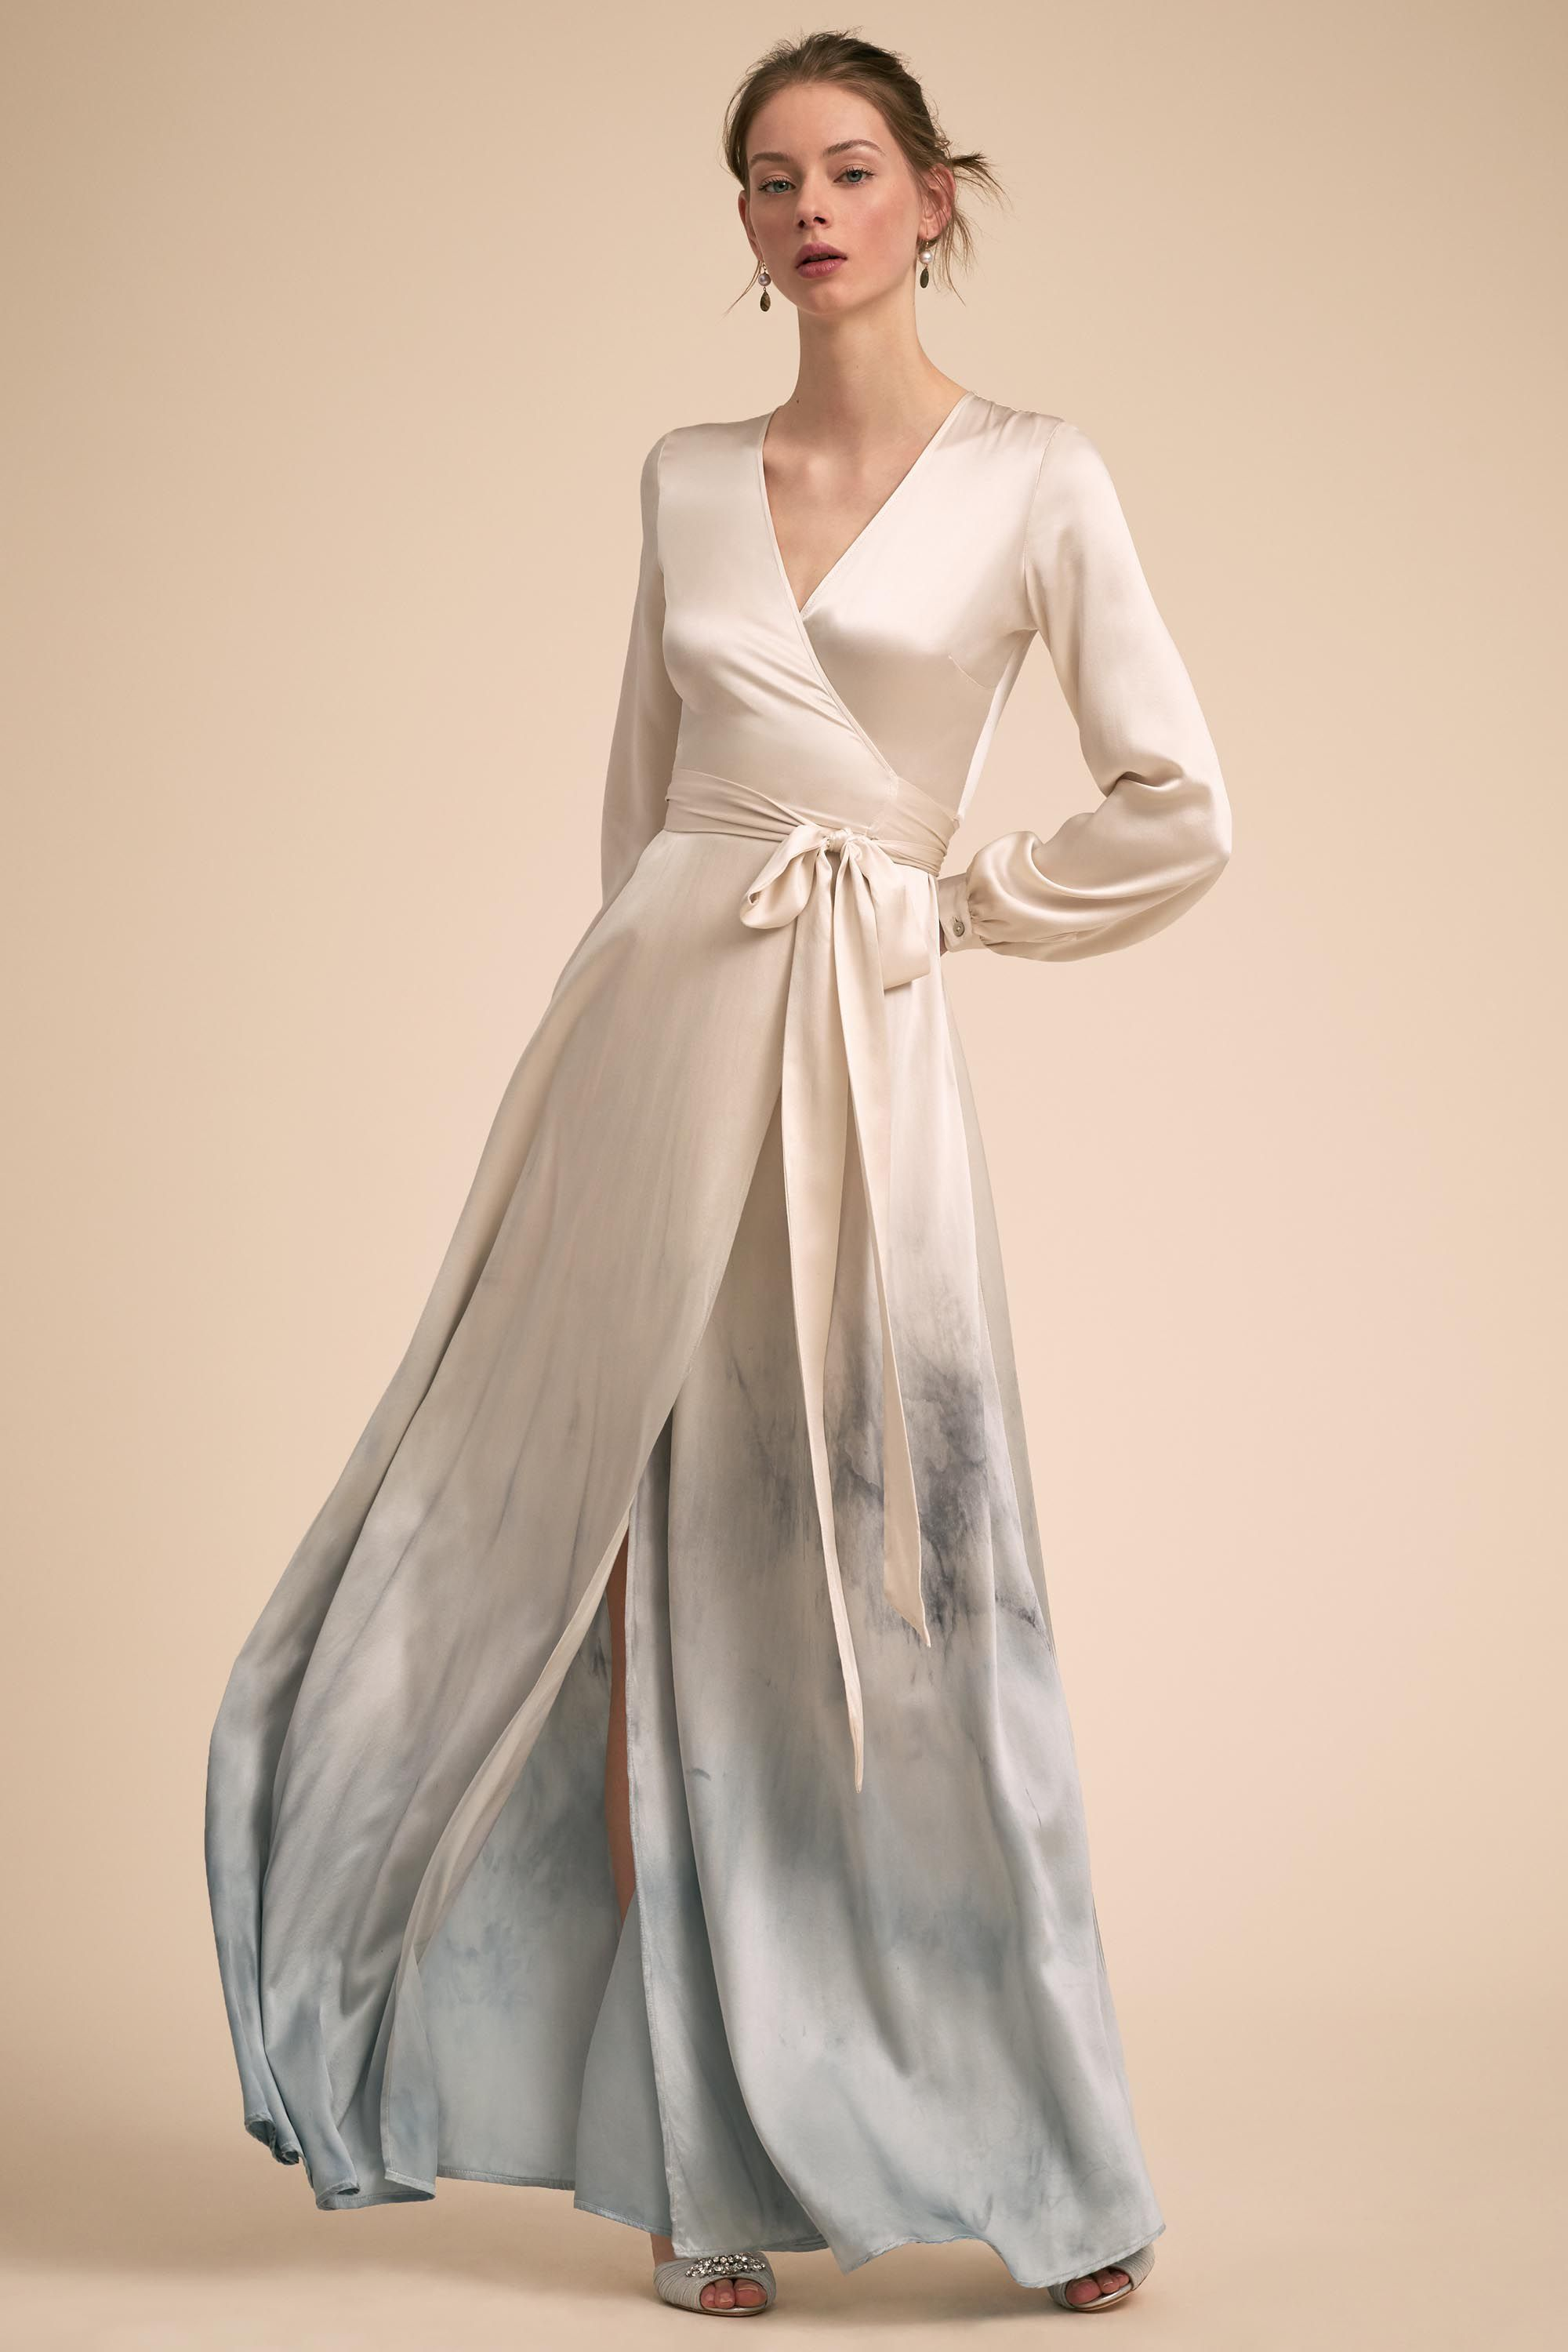 Madrigal gown by kamperett from bhldn gorgeous ivory silk gives